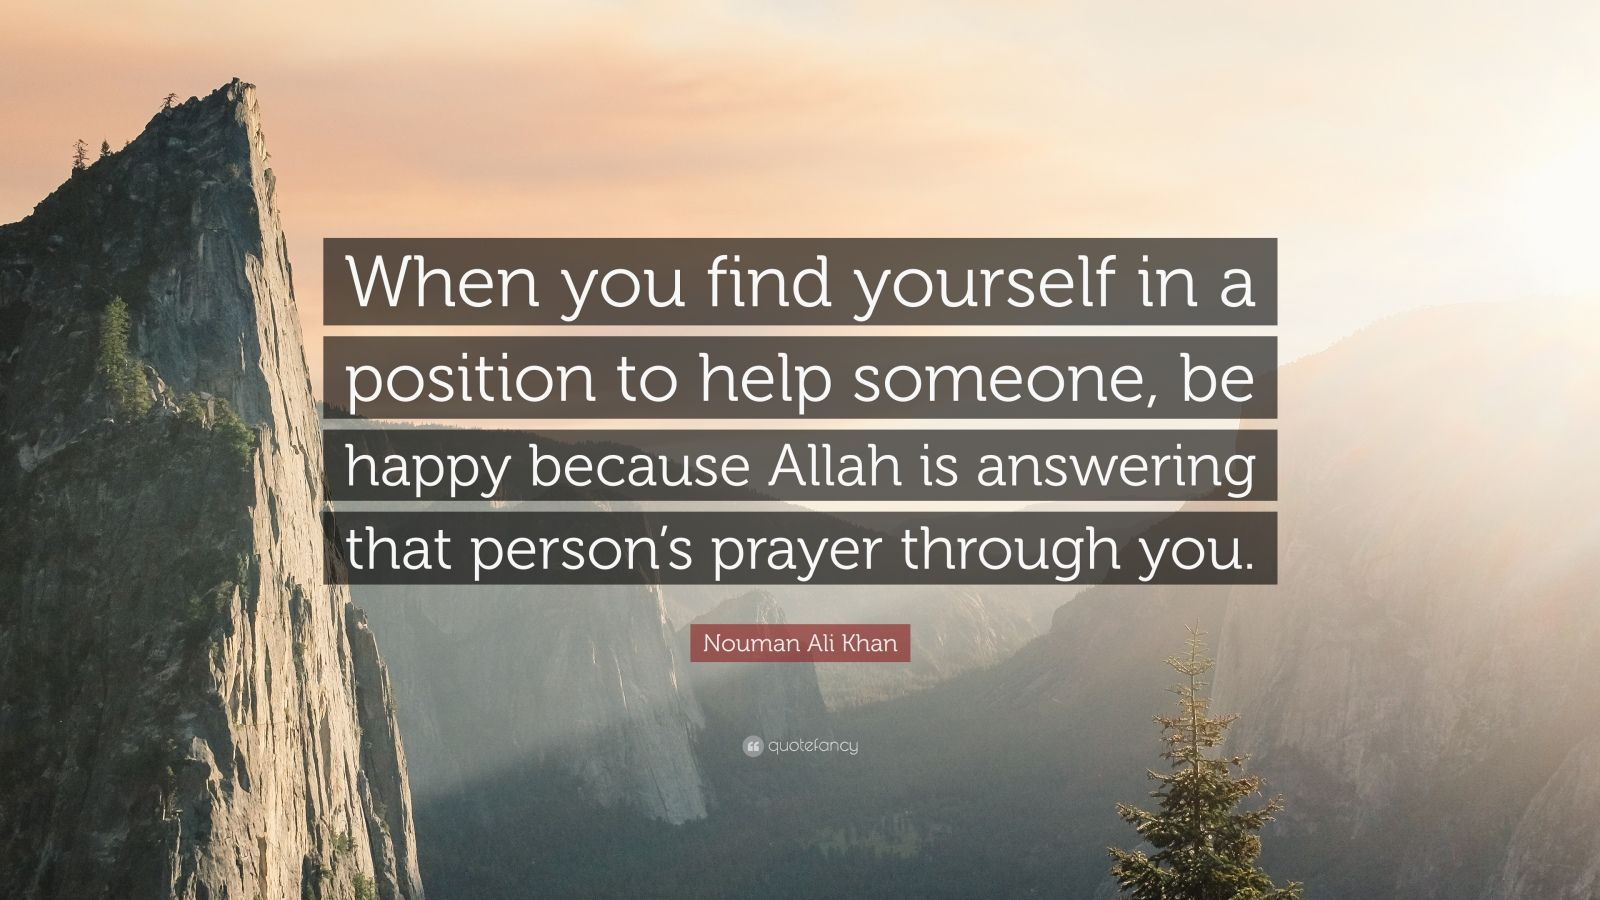 nouman ali khan quote   u201cwhen you find yourself in a